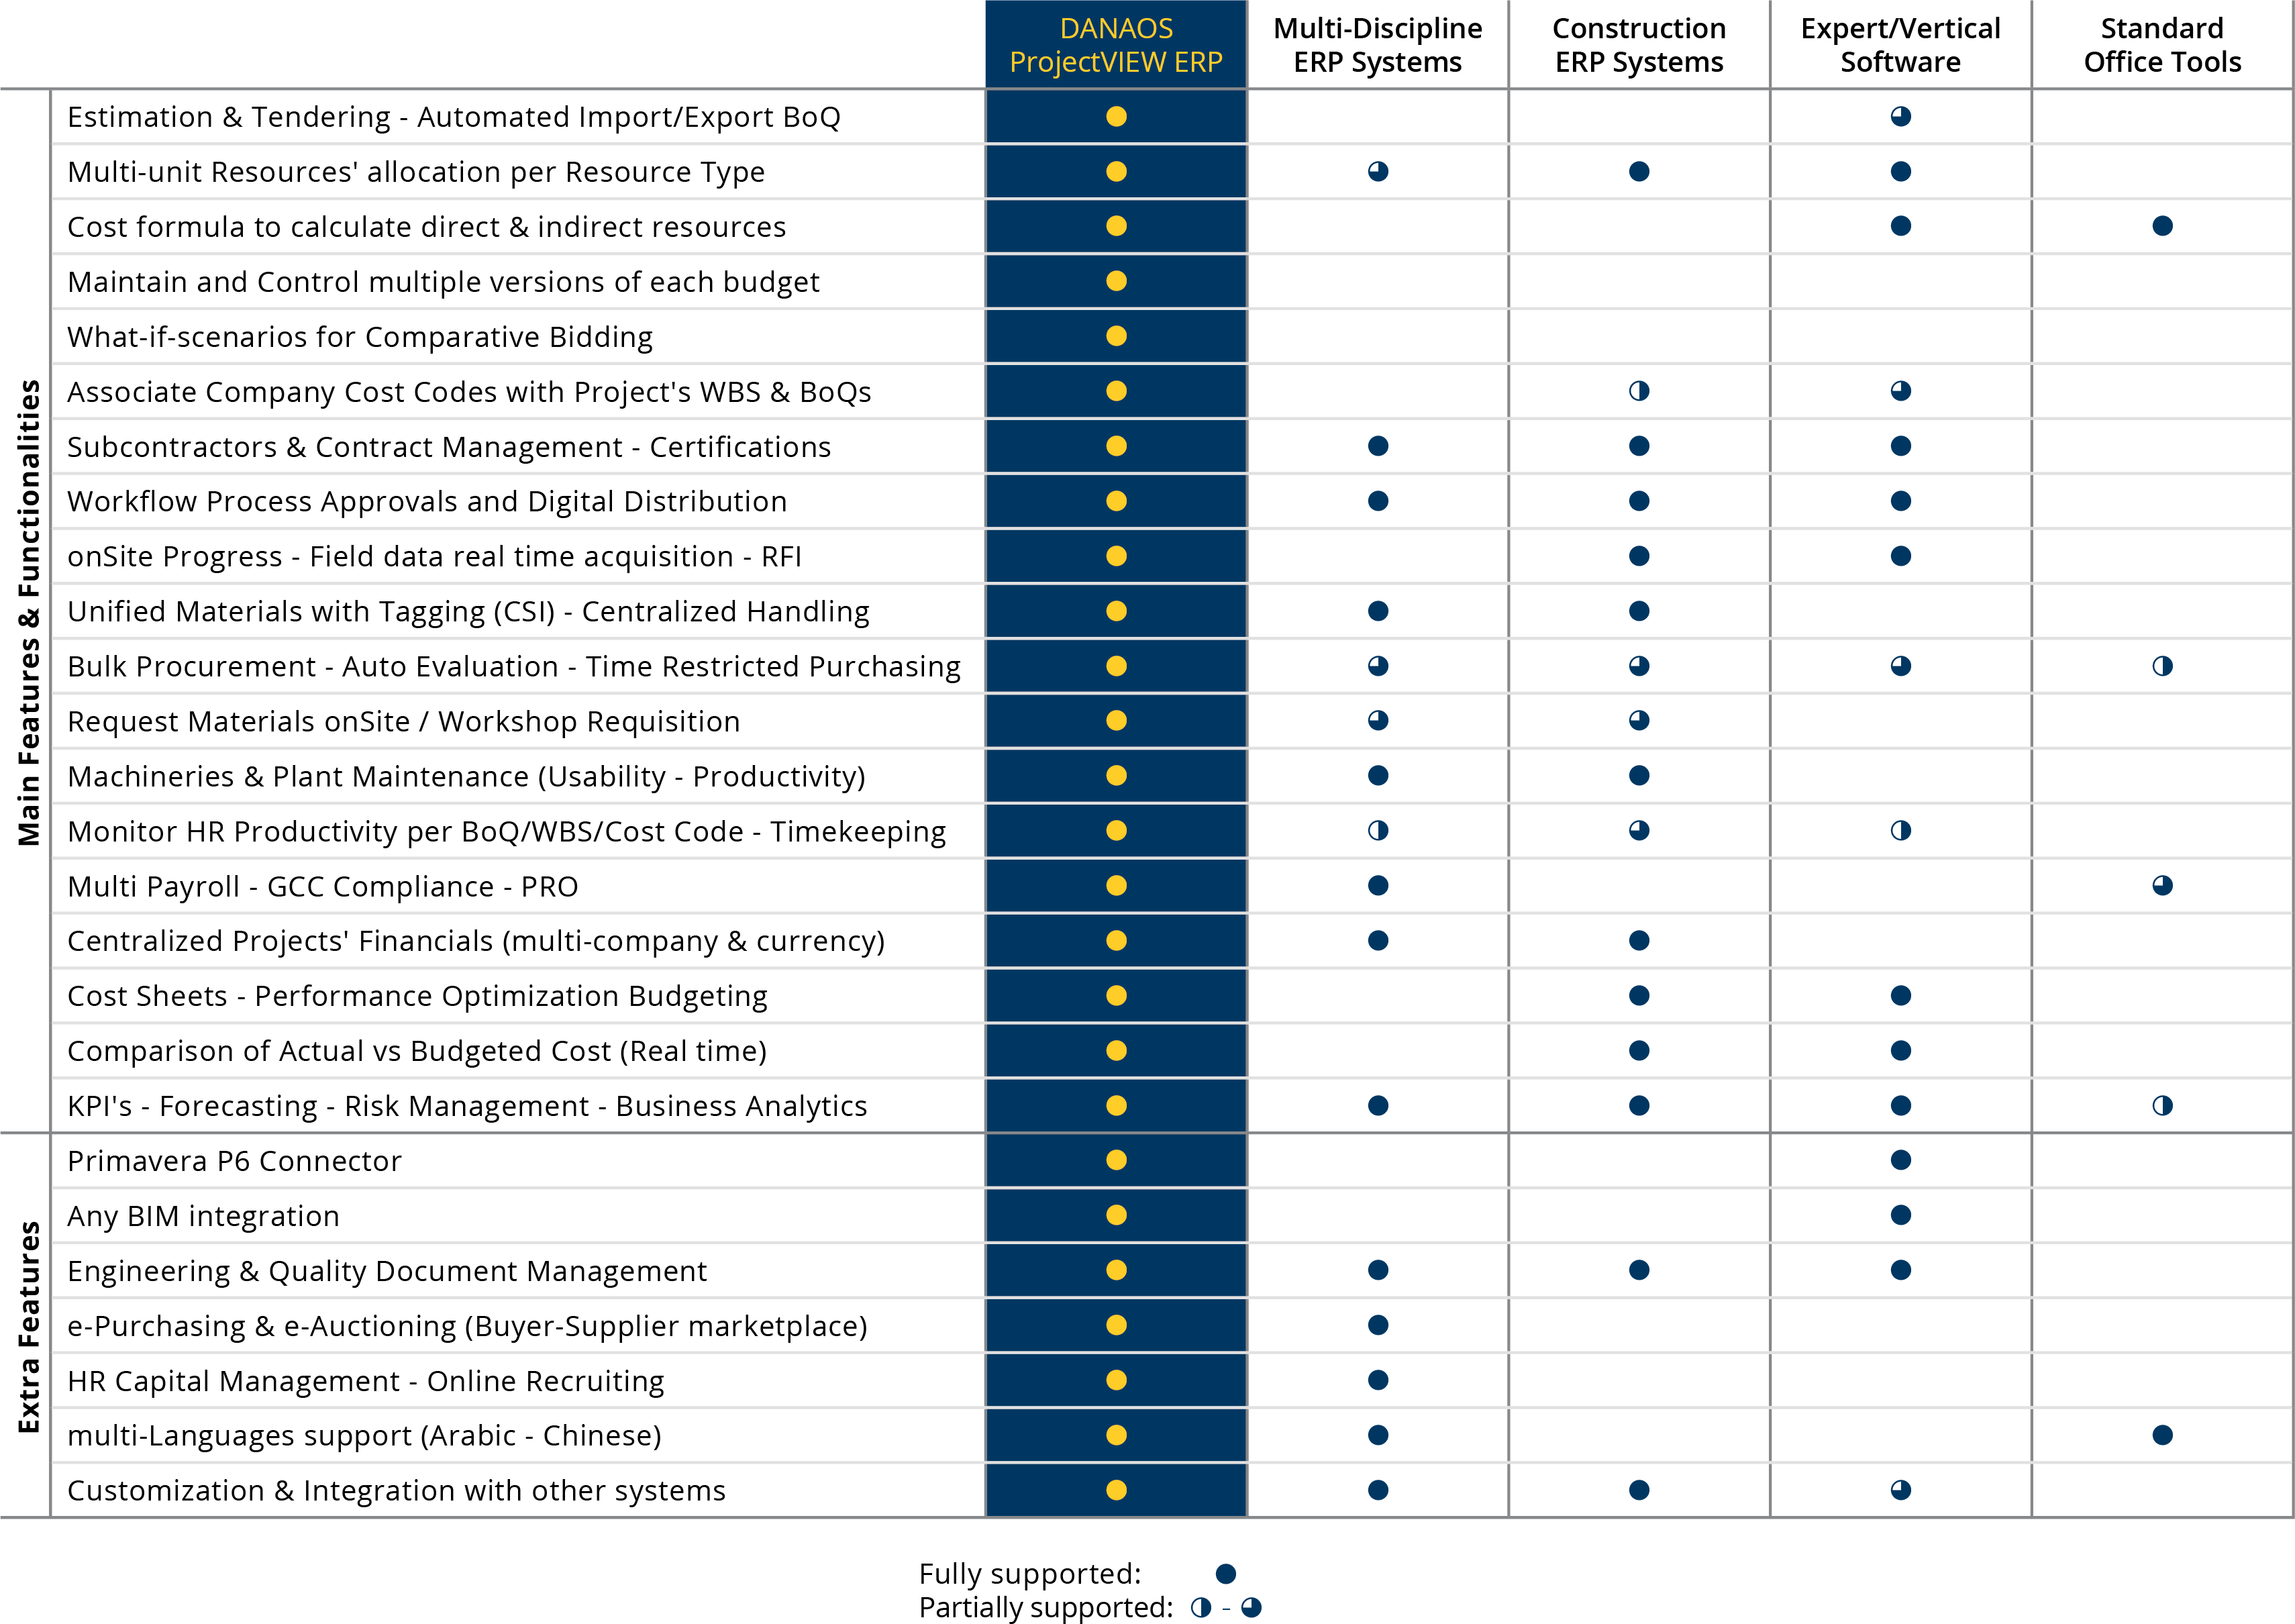 danaos projects projectview erp comparison chart